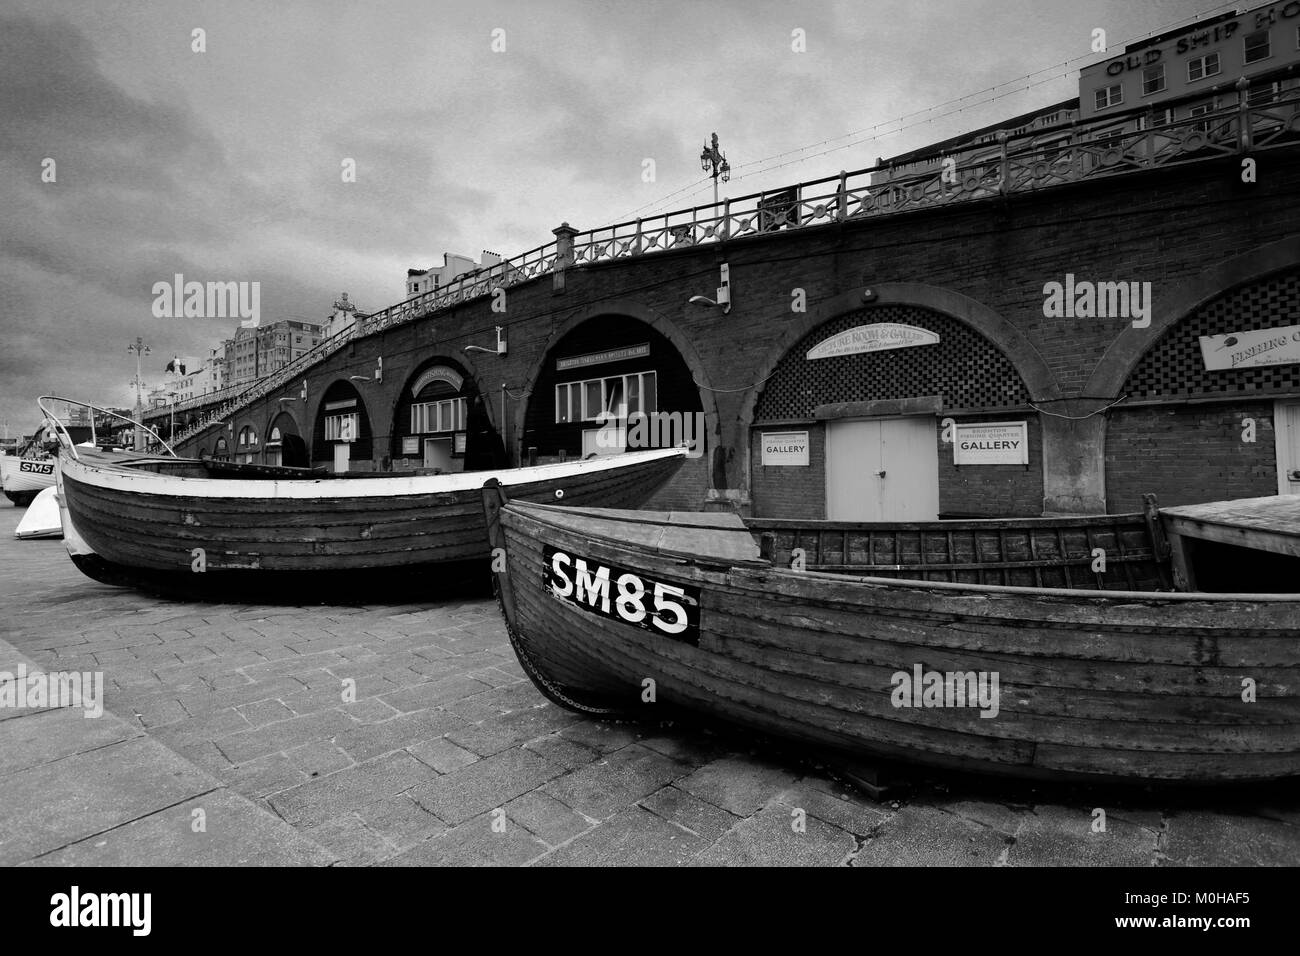 The Fishermans Museum on the promenade, Brighton & Hove, East Sussex, England, UK - Stock Image